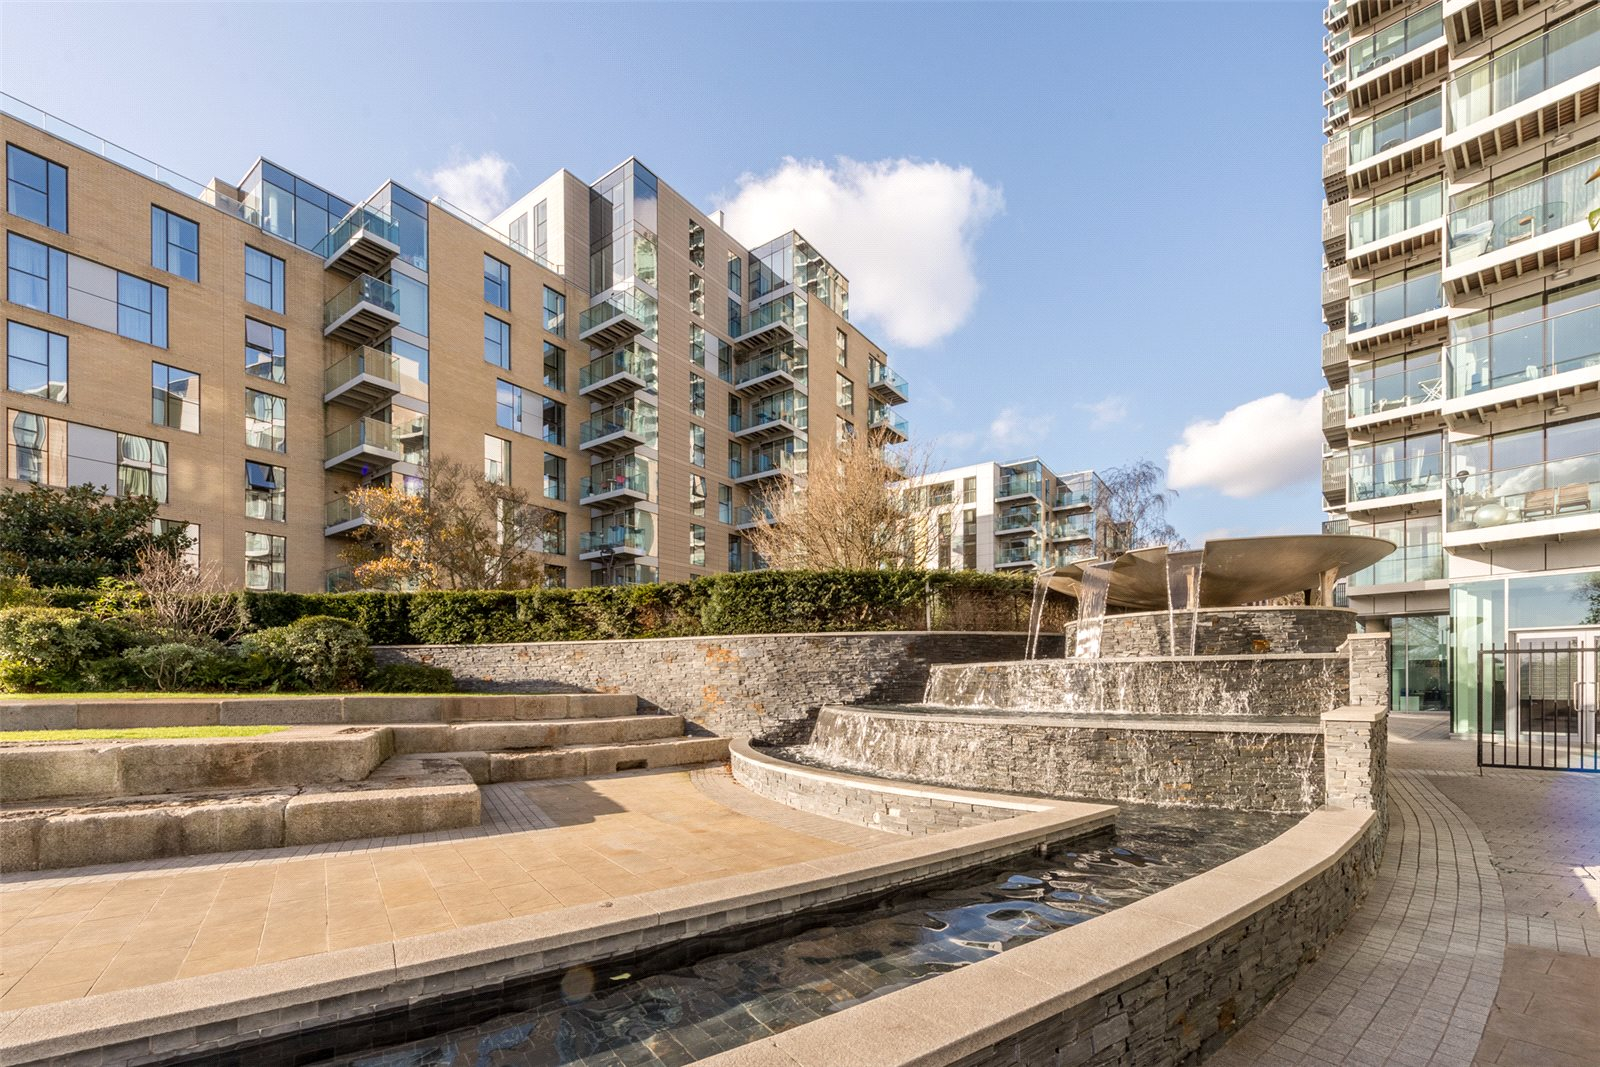 2 Bedrooms Apartment Flat for sale in Kingly Building, Woodberry Down, London, N4